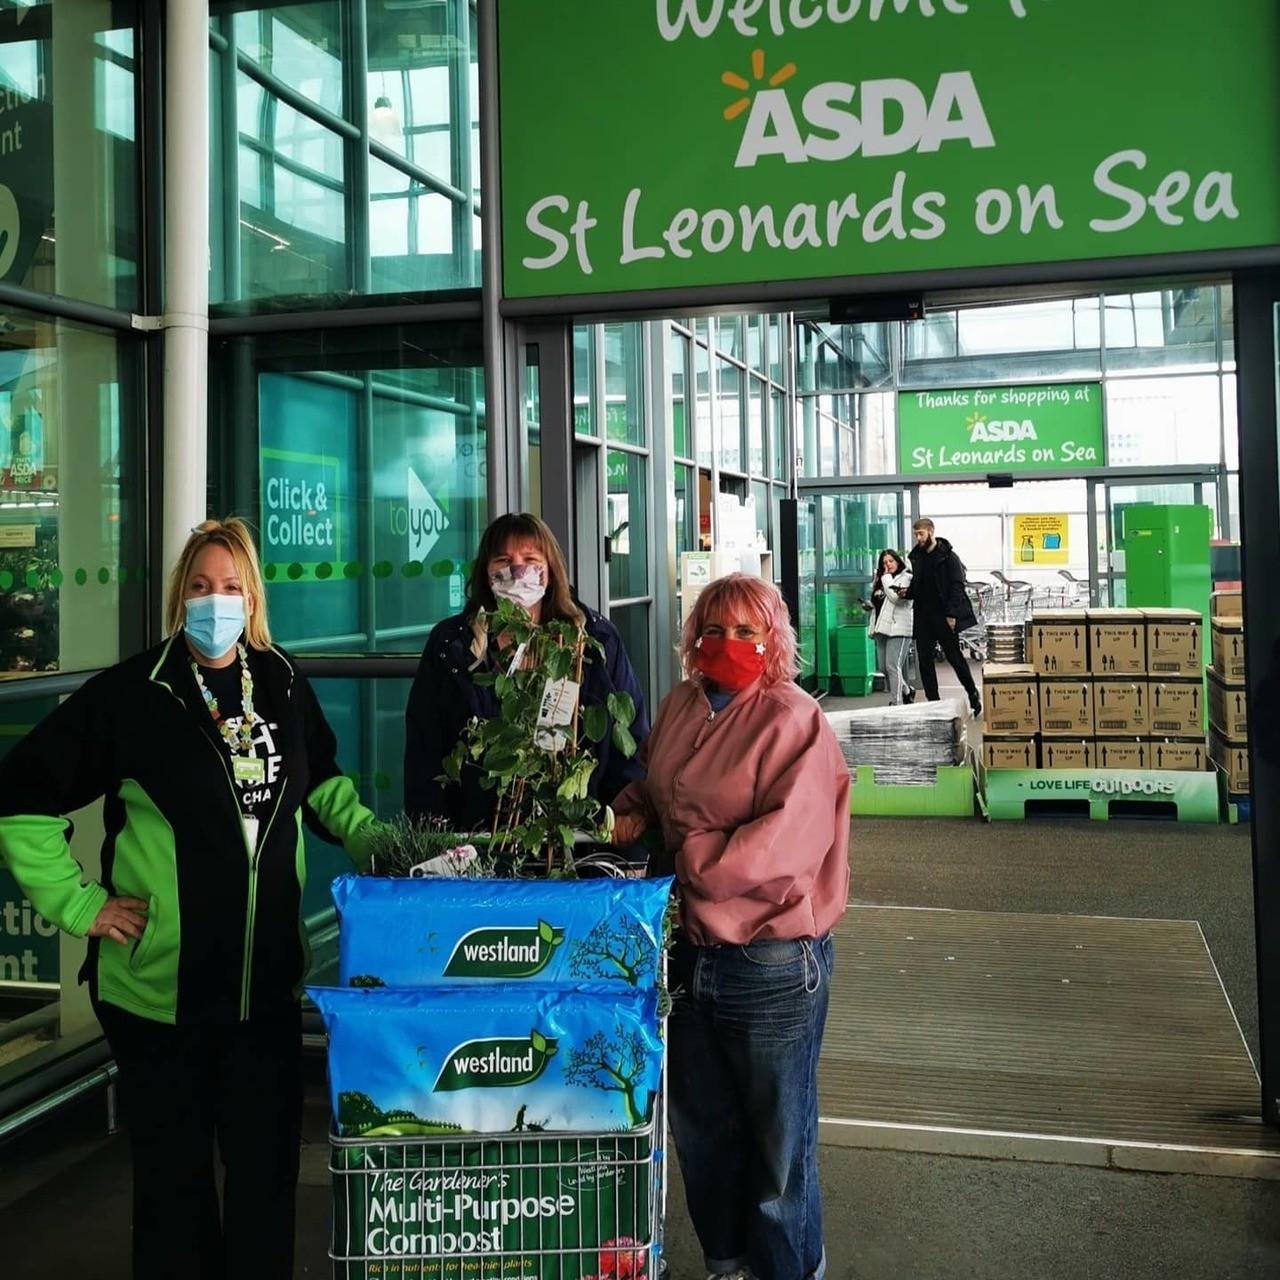 Donating Plants and soil to the Art Shack | Asda St Leonards on Sea